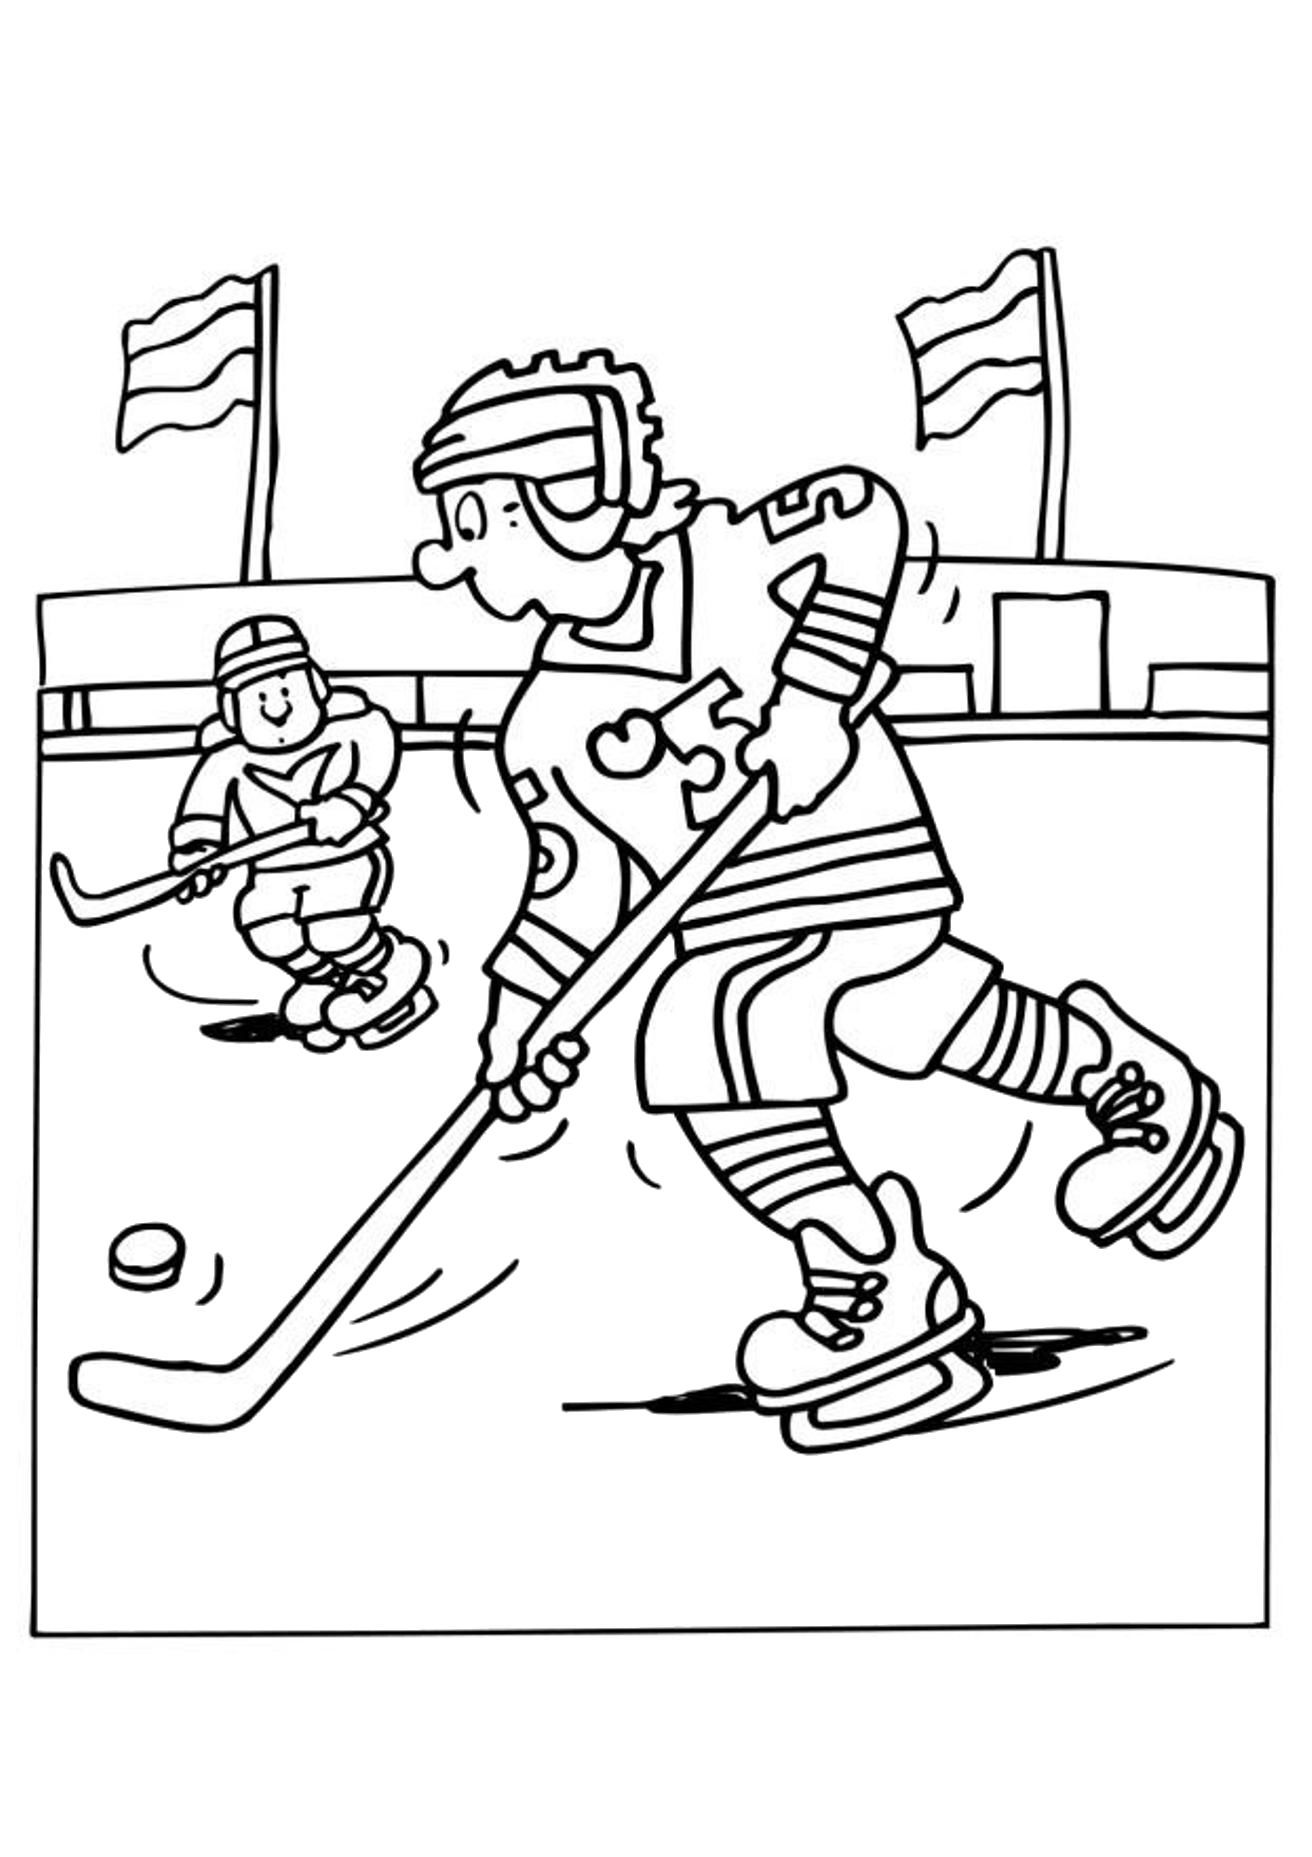 Trying To Get Past The Opponent Hockey Sports Coloring Pages